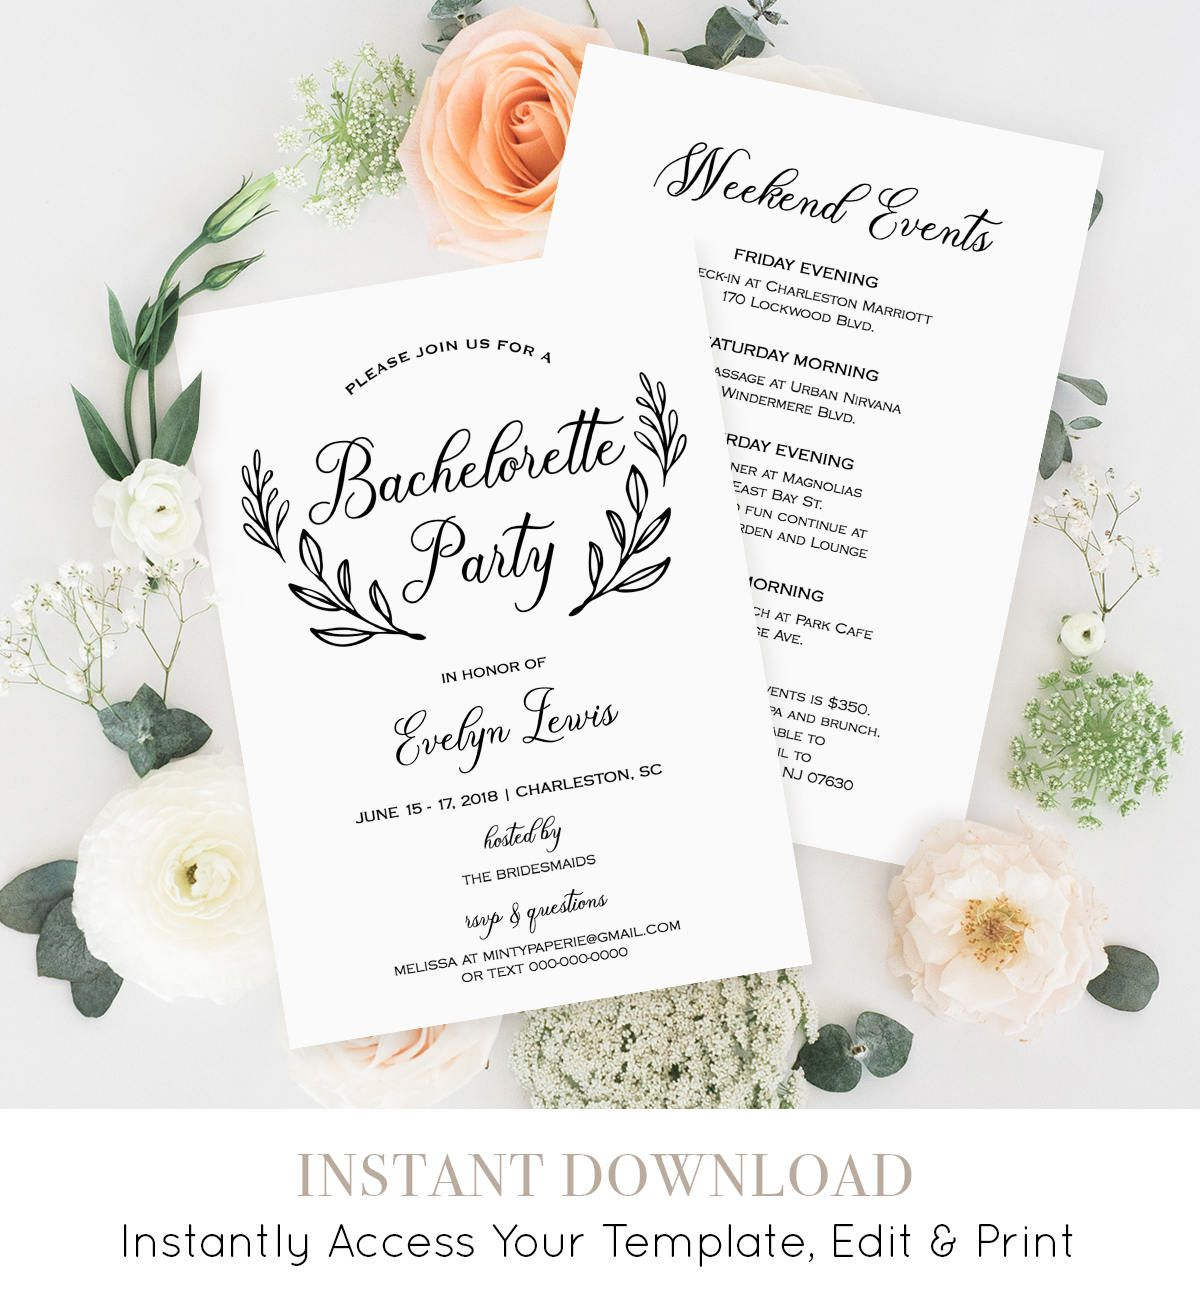 008 Incredible Bachelorette Party Itinerary Template Free Inspiration  DownloadFull